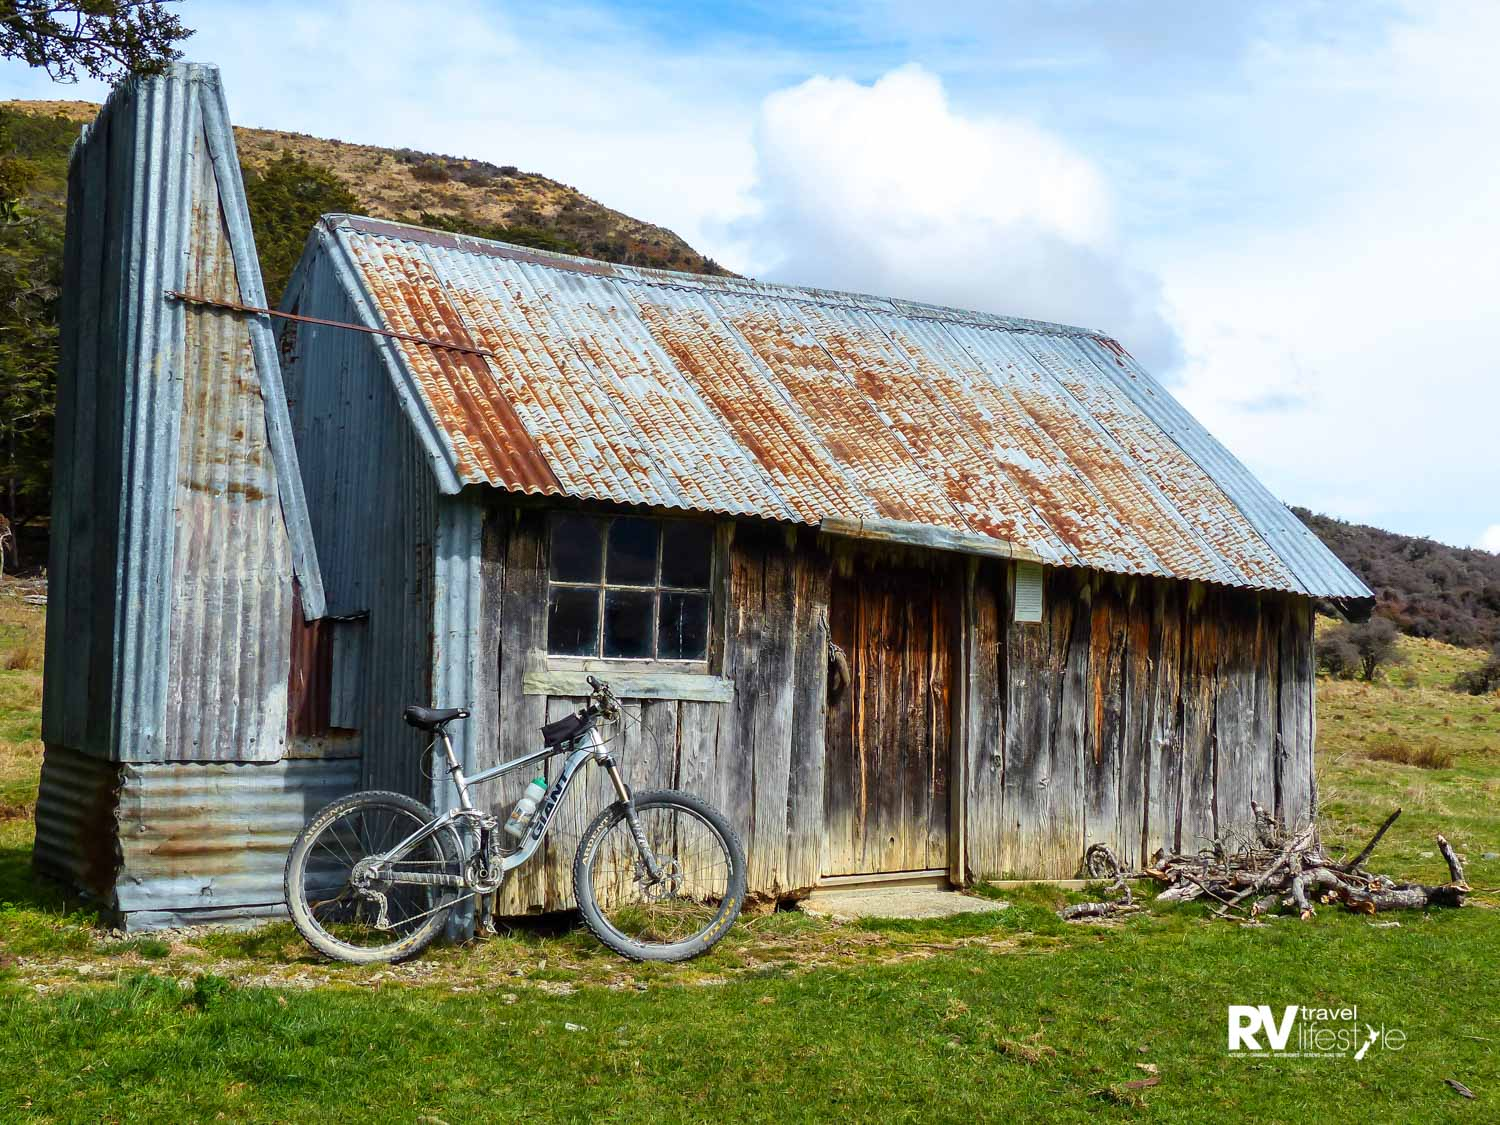 The Bullock Creek Hut takes you right back to our early pioneer days